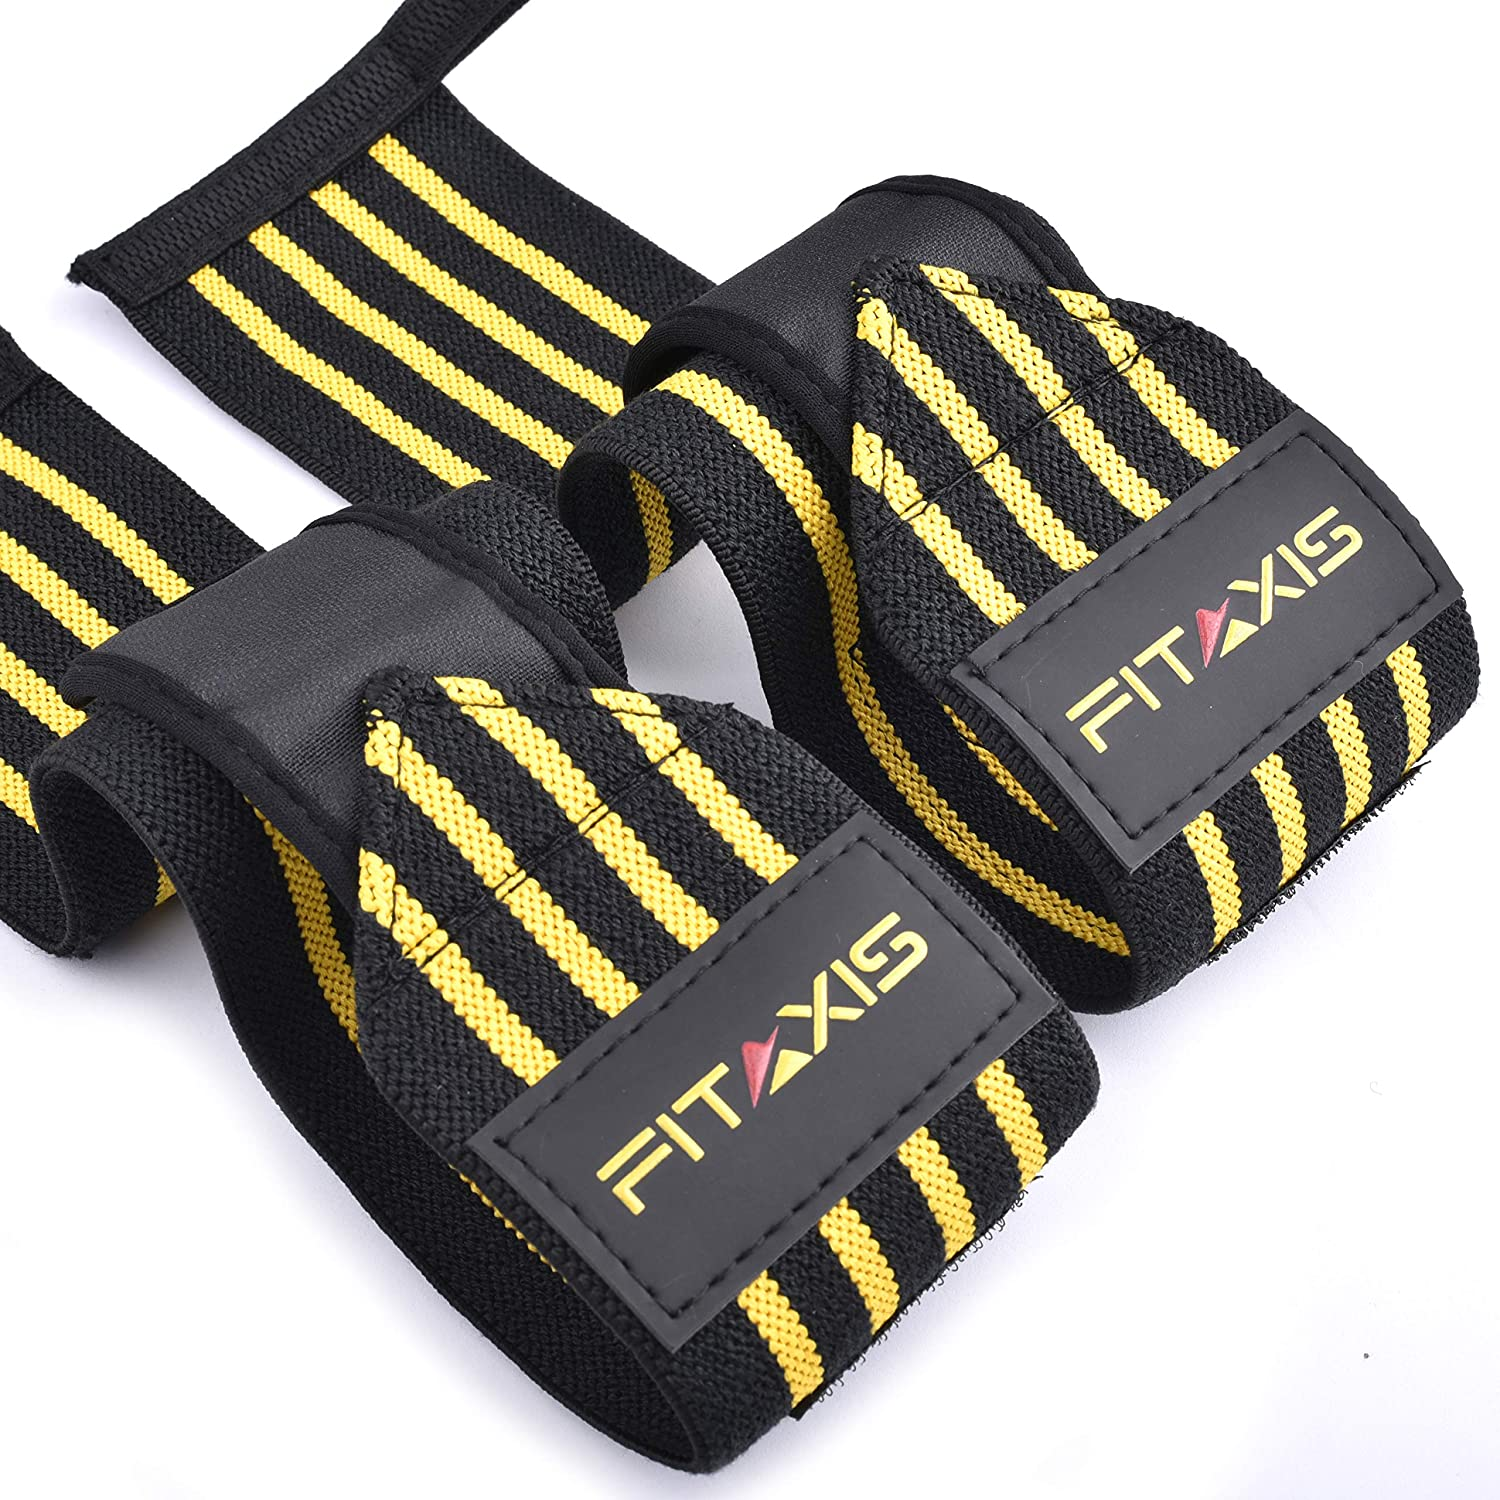 FITAXIS Mu/ñequeras Vendido en par Wrist Wraps//Bands for Gimnasio Fitness Crossfit Weightlifting para Hombres y Mujeres